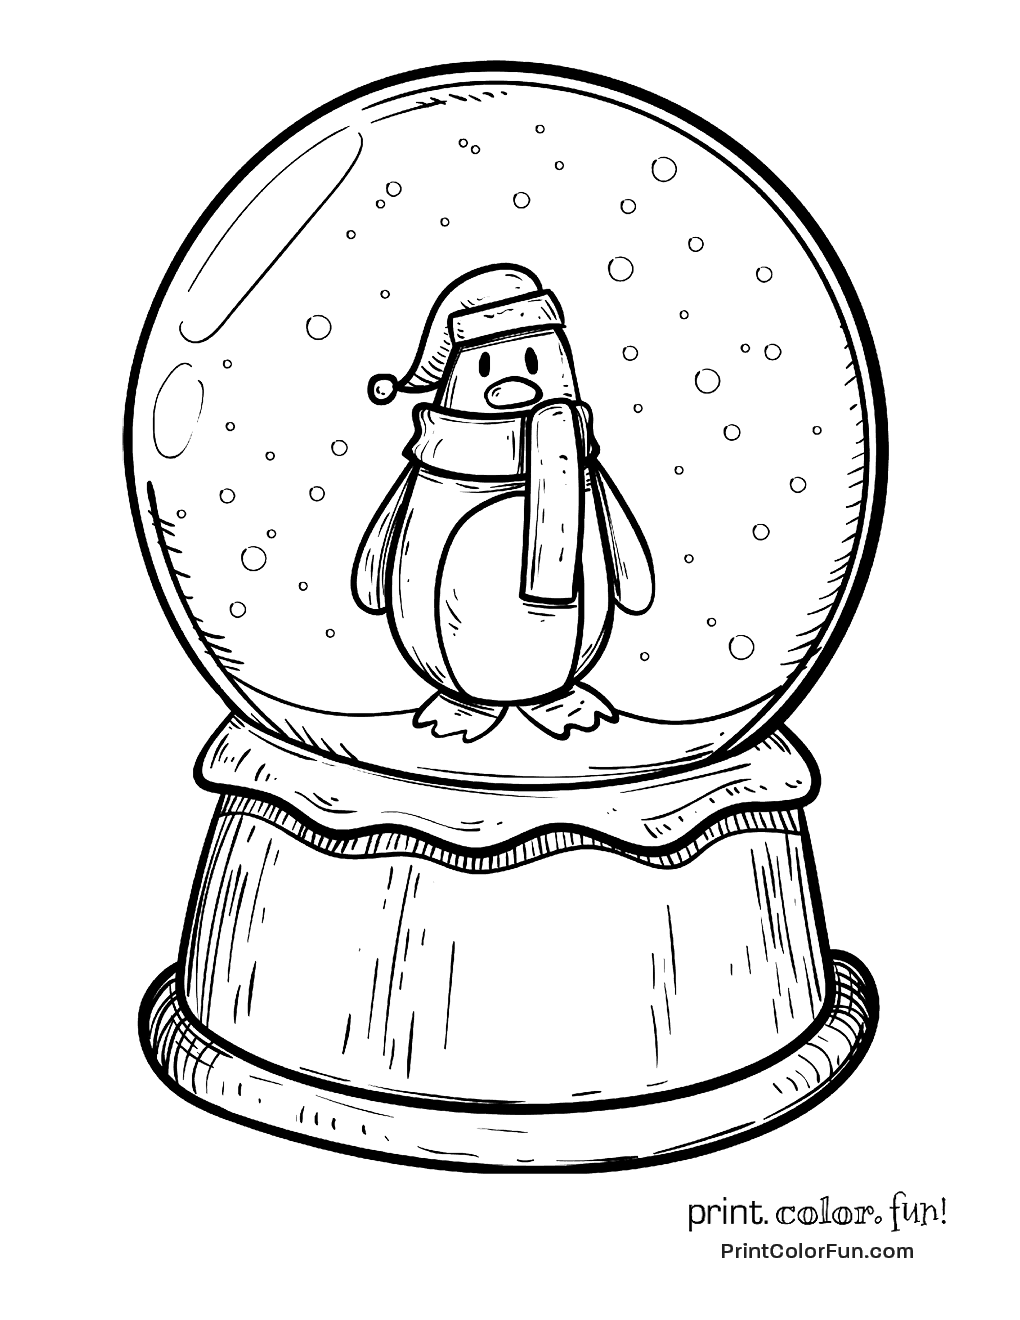 Snow Globe Coloring Page Winter Snow Globe With A Penguin Coloring Page  Printcolorfun